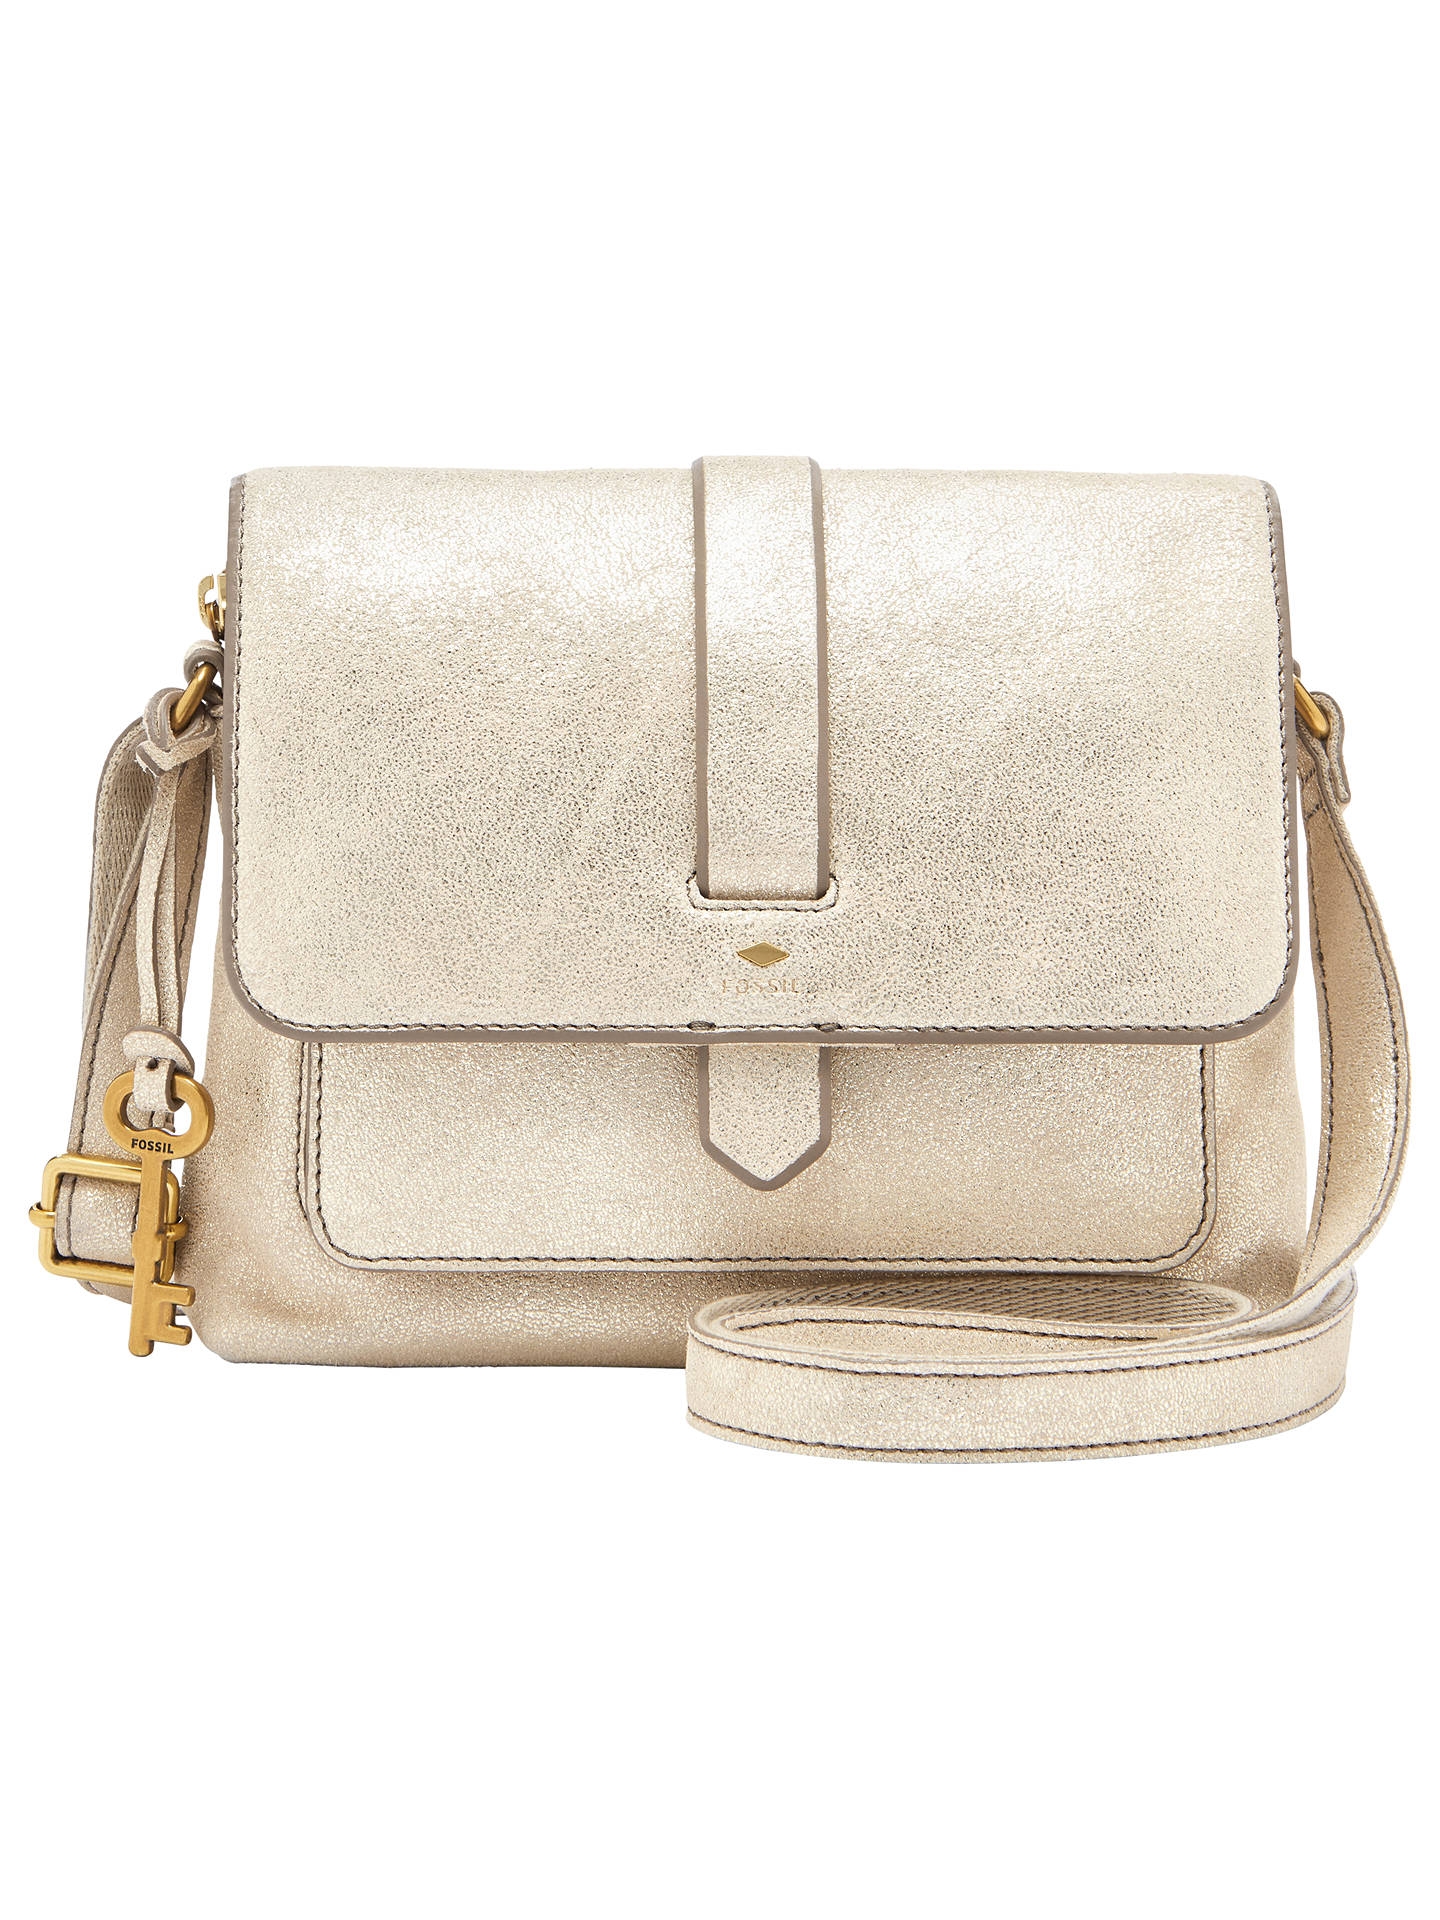 f72bb07d71 Buy Fossil Kinley Small Leather Cross Body Bag